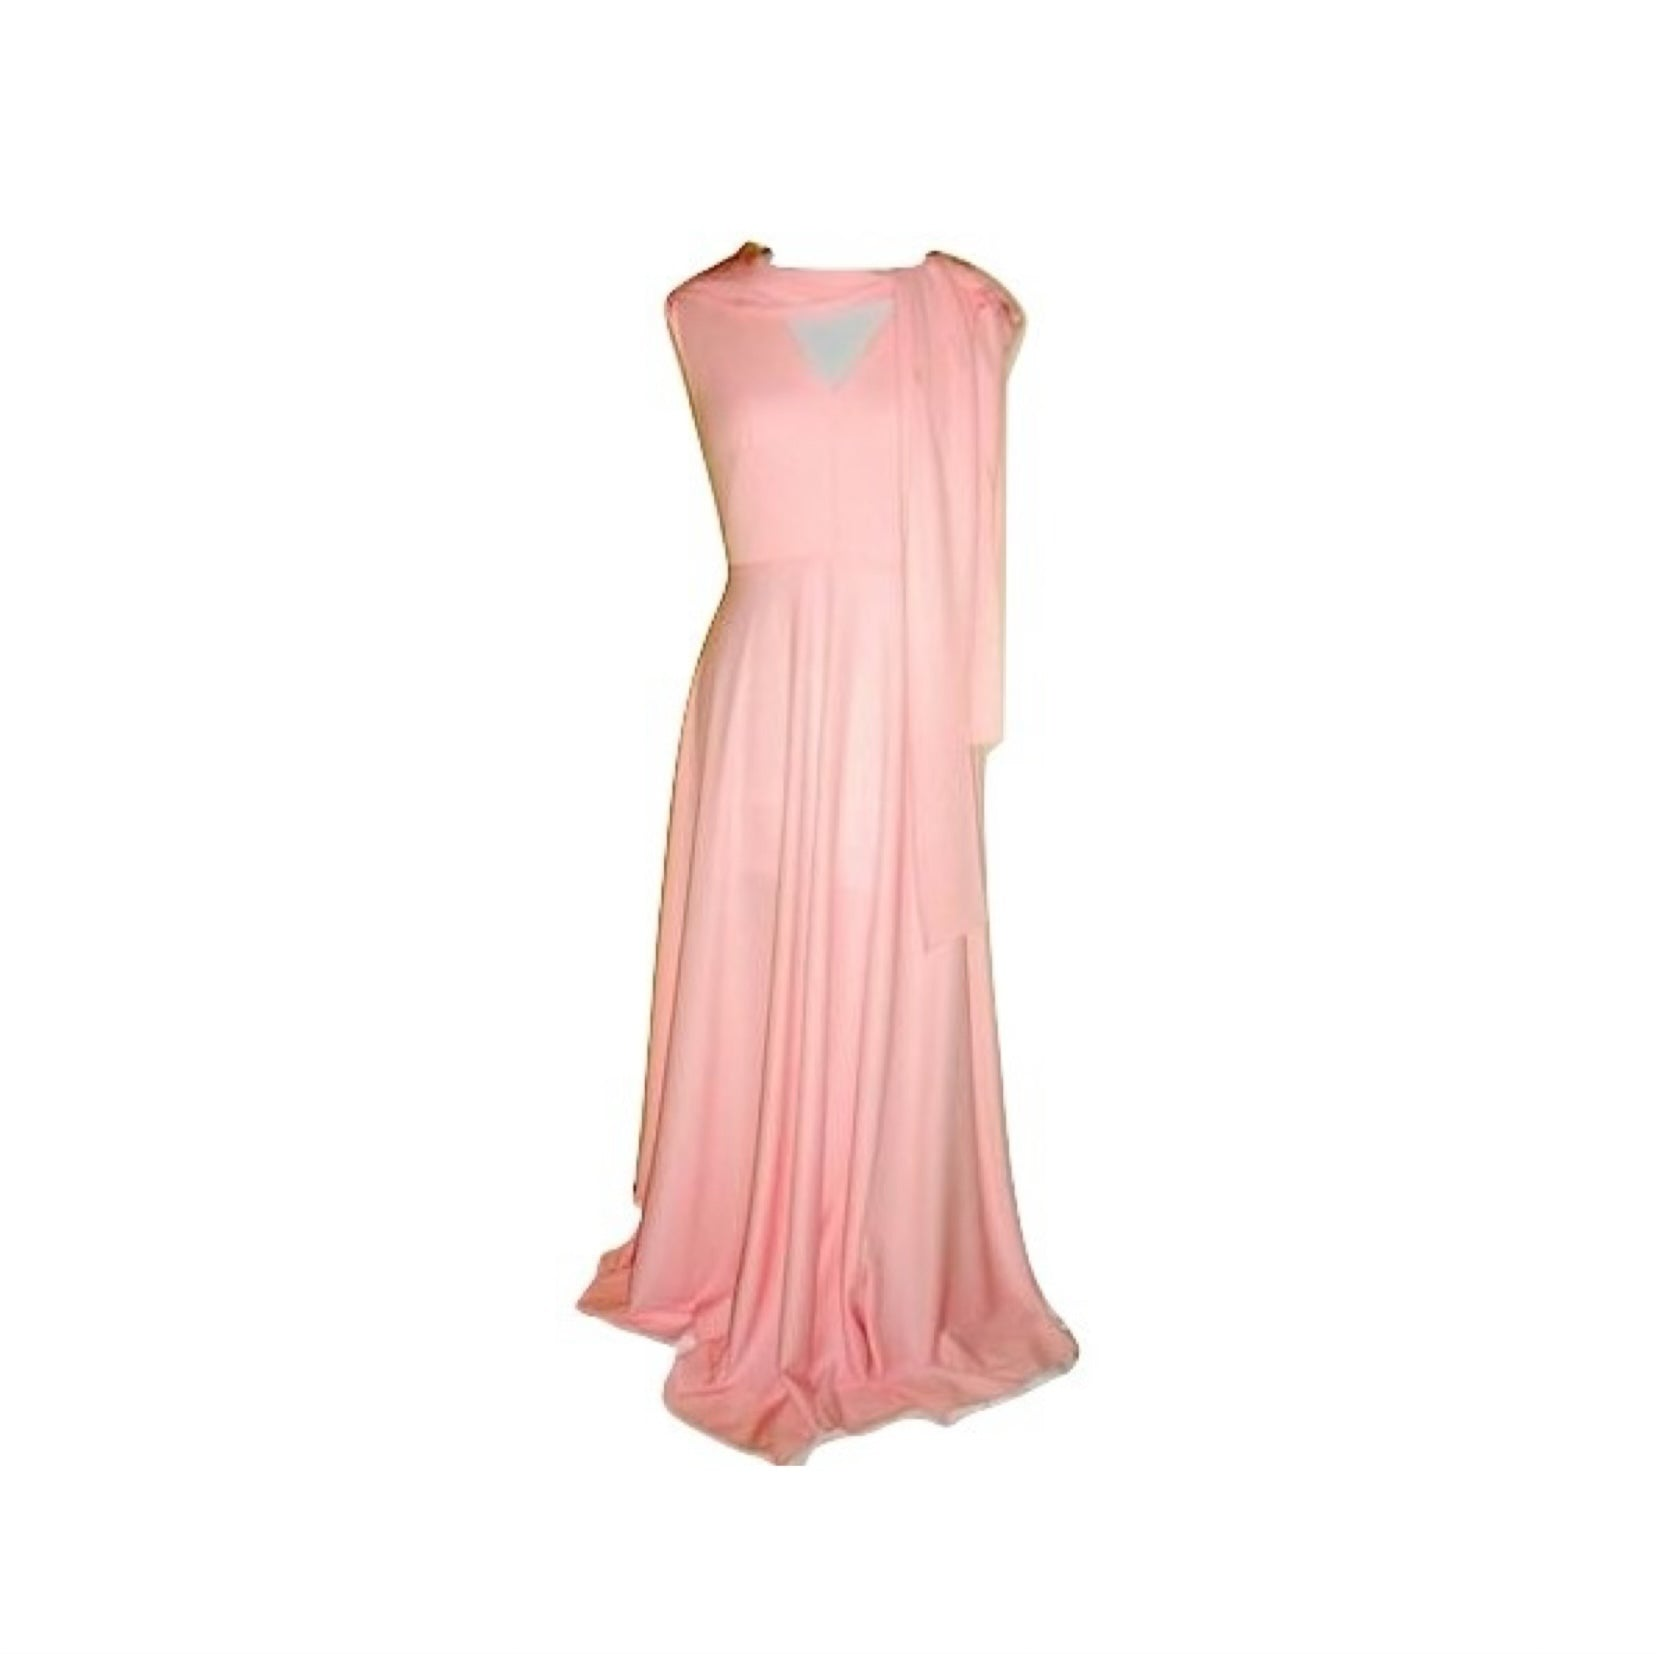 Vintage House Of Bianchi Pale Pink 70s Disco Dress Gown Small